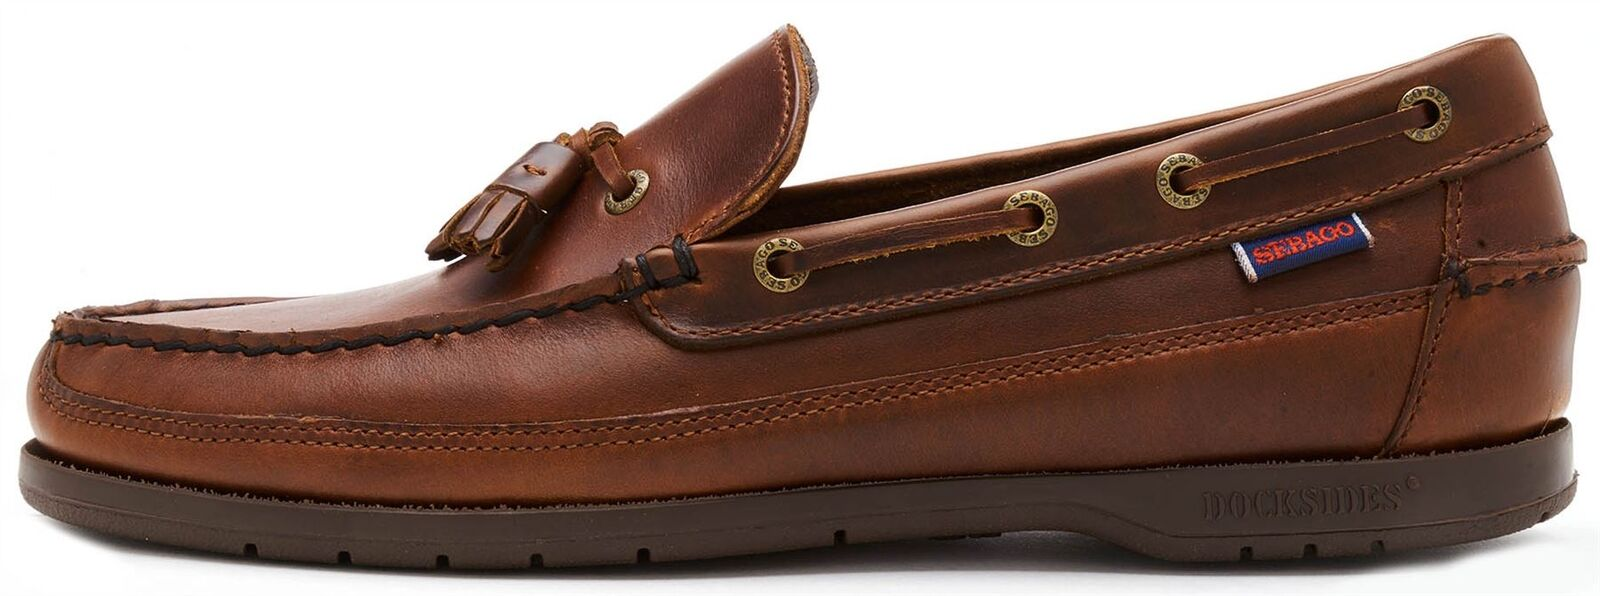 Sebago Ketch FGL Oiled Waxy Leather Moccasin Regular & Wide Width shoes in Brown